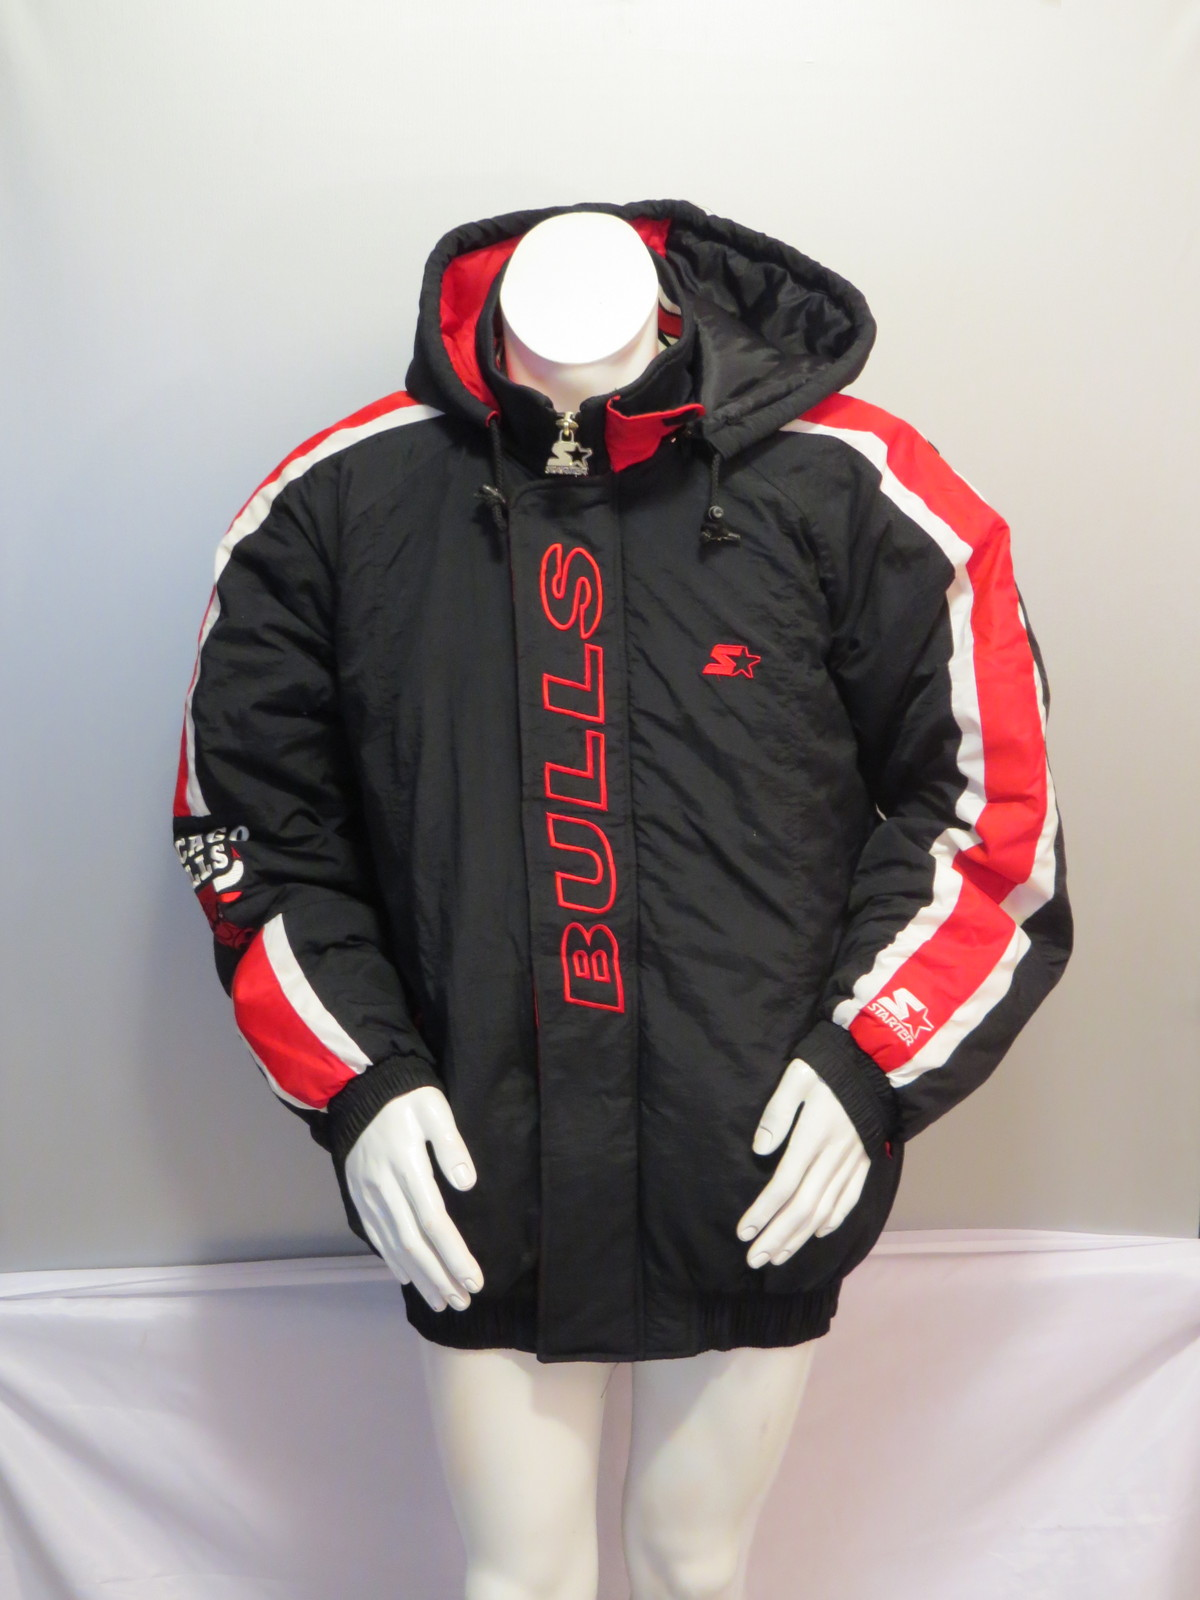 99f49bdd18e Vintage Chicago Bulls Jacket - Puffy Parka and 50 similar items. Img 1240